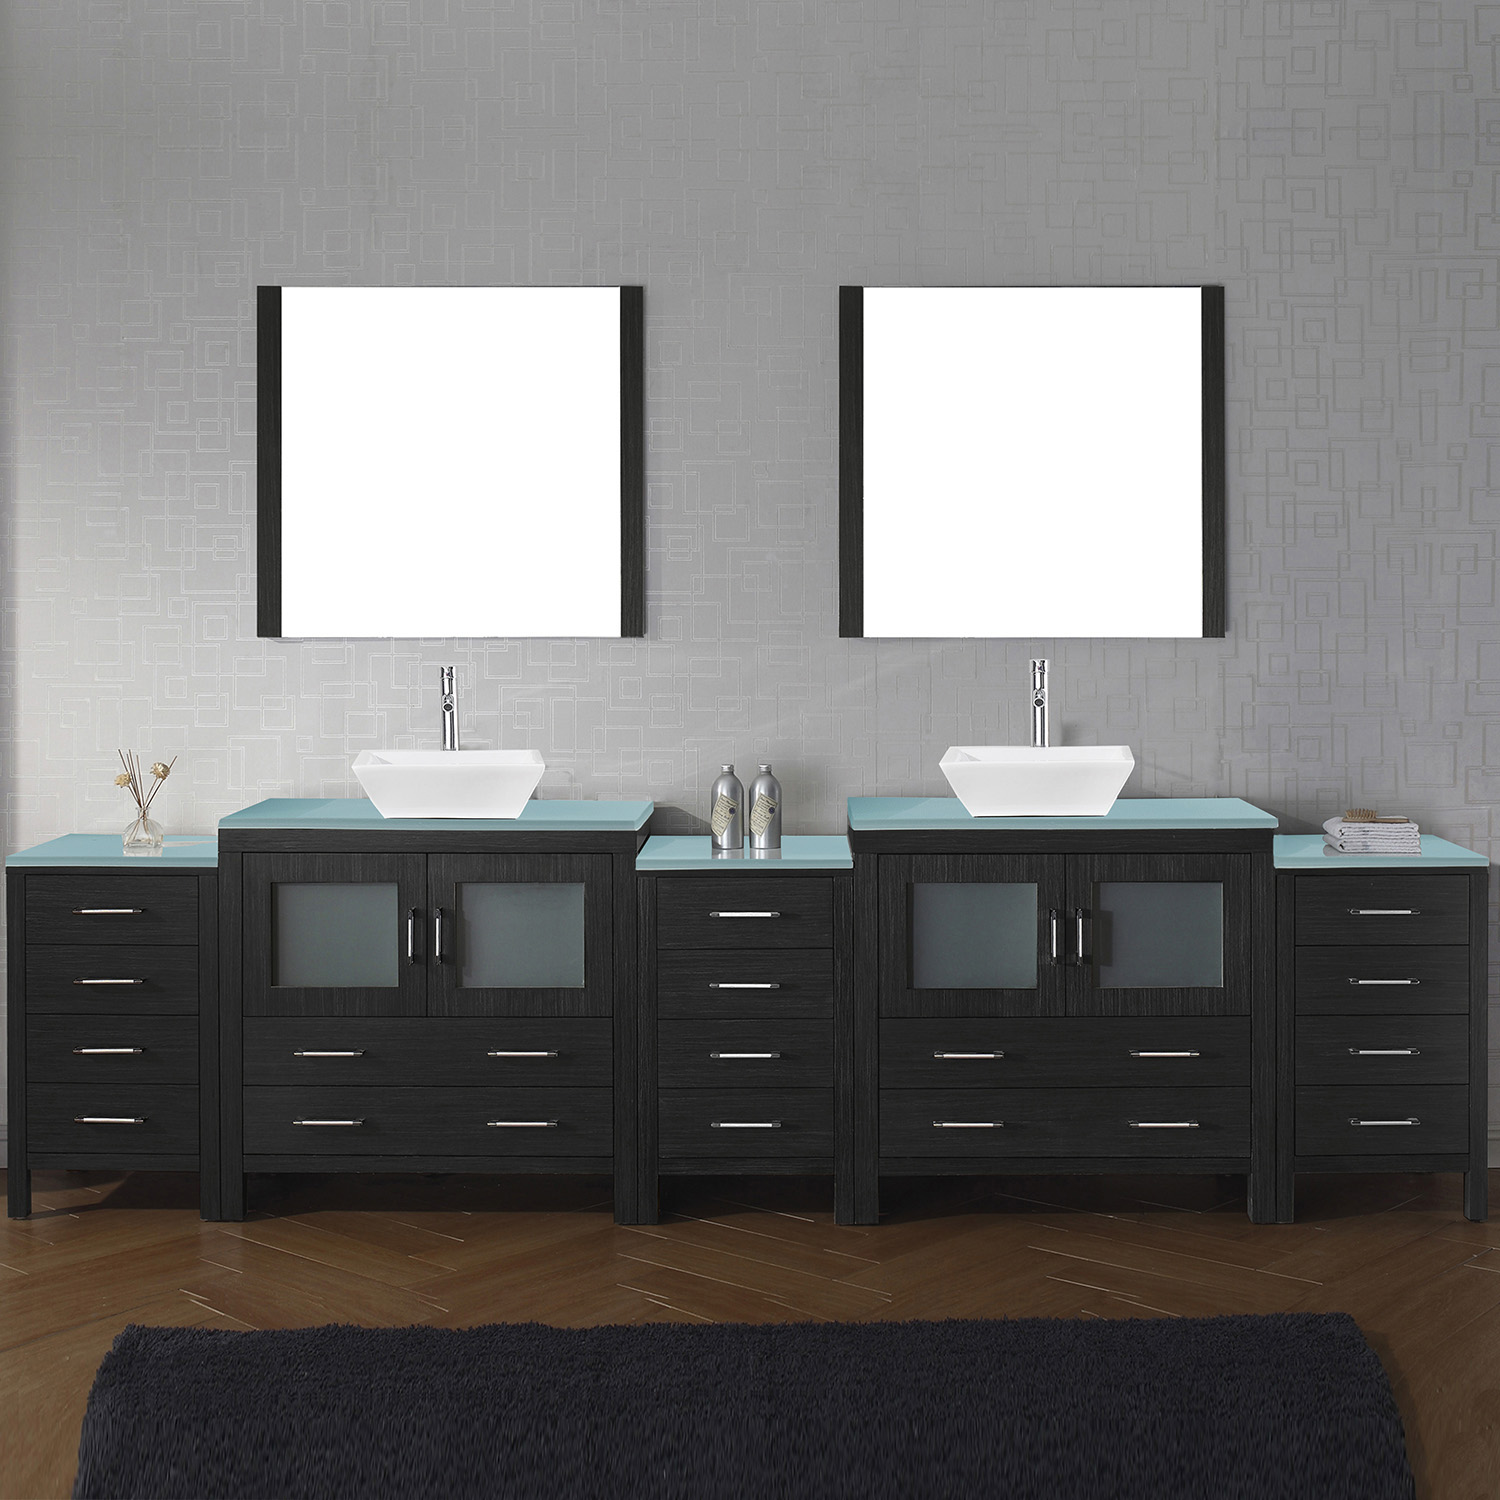 "110"" Double Bath Vanity in Zebra Grey with Aqua Tempered Glass Top and Square Sink with Polished Chrome Faucet and Mirrors"